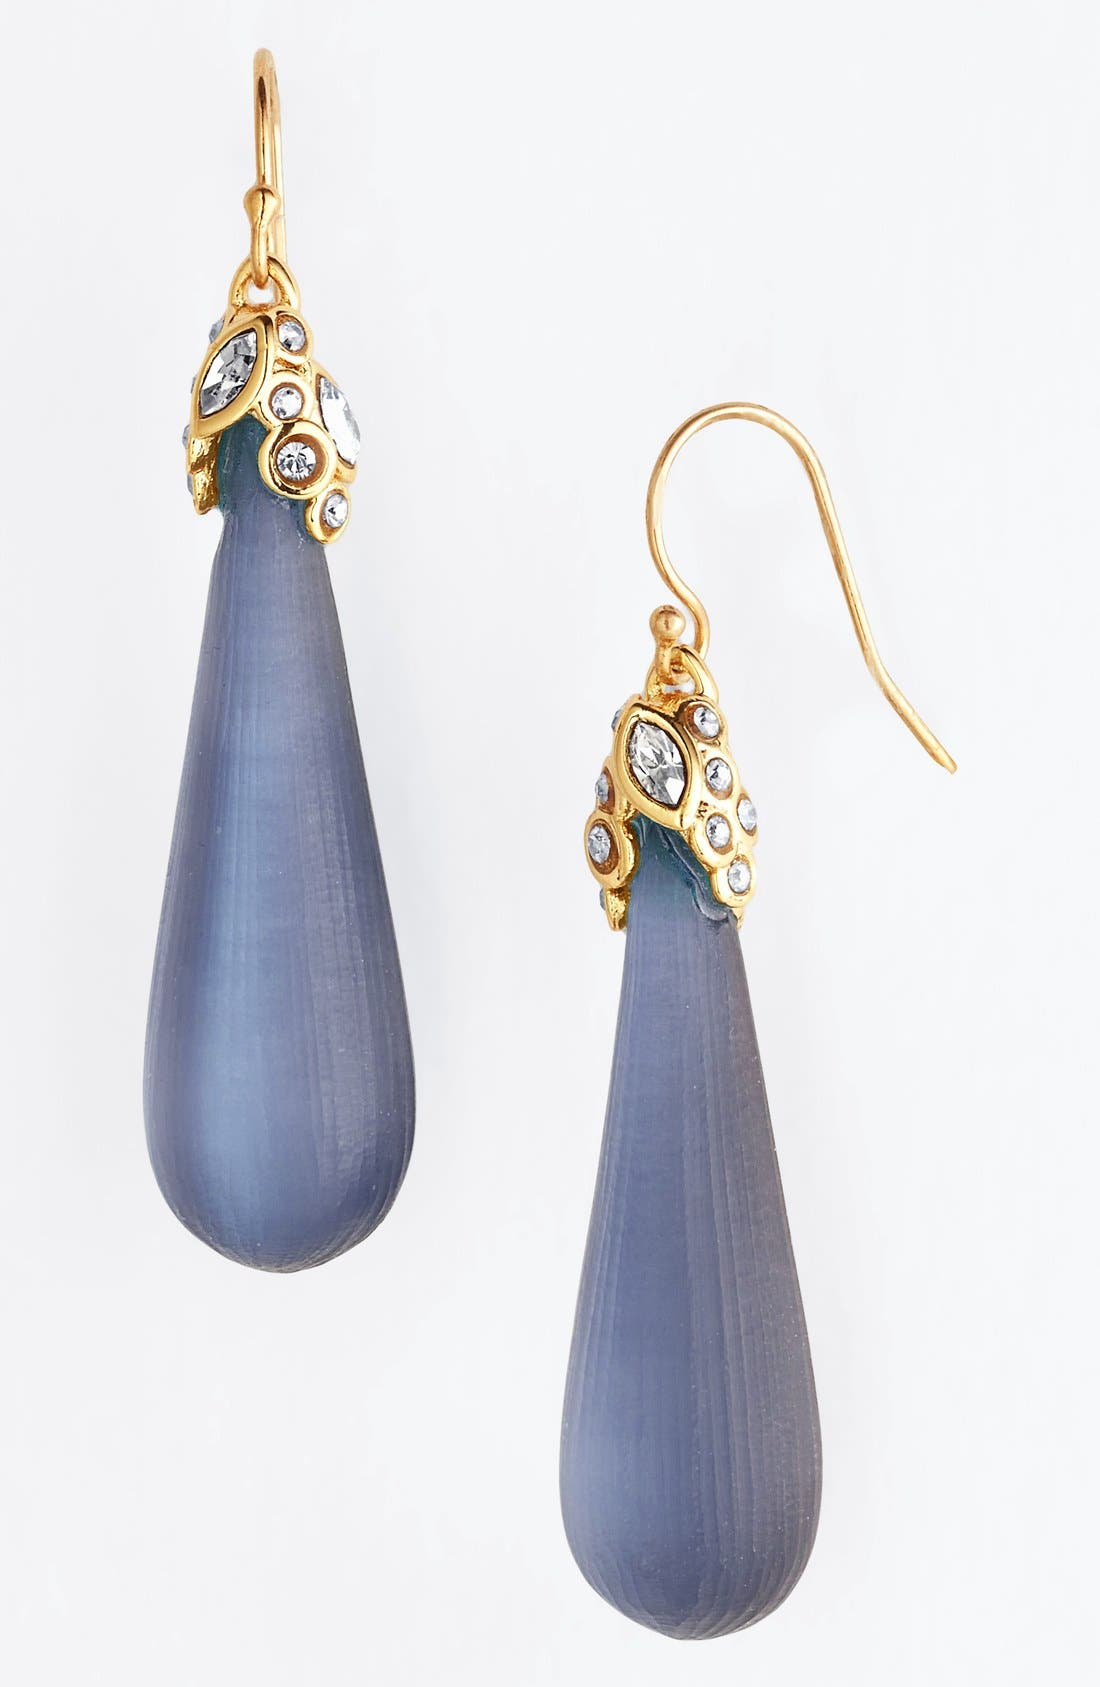 Alternate Image 1 Selected - Alexis Bittar 'Lucite® - Georgian' Teardrop Earrings (Nordstrom Exclusive)